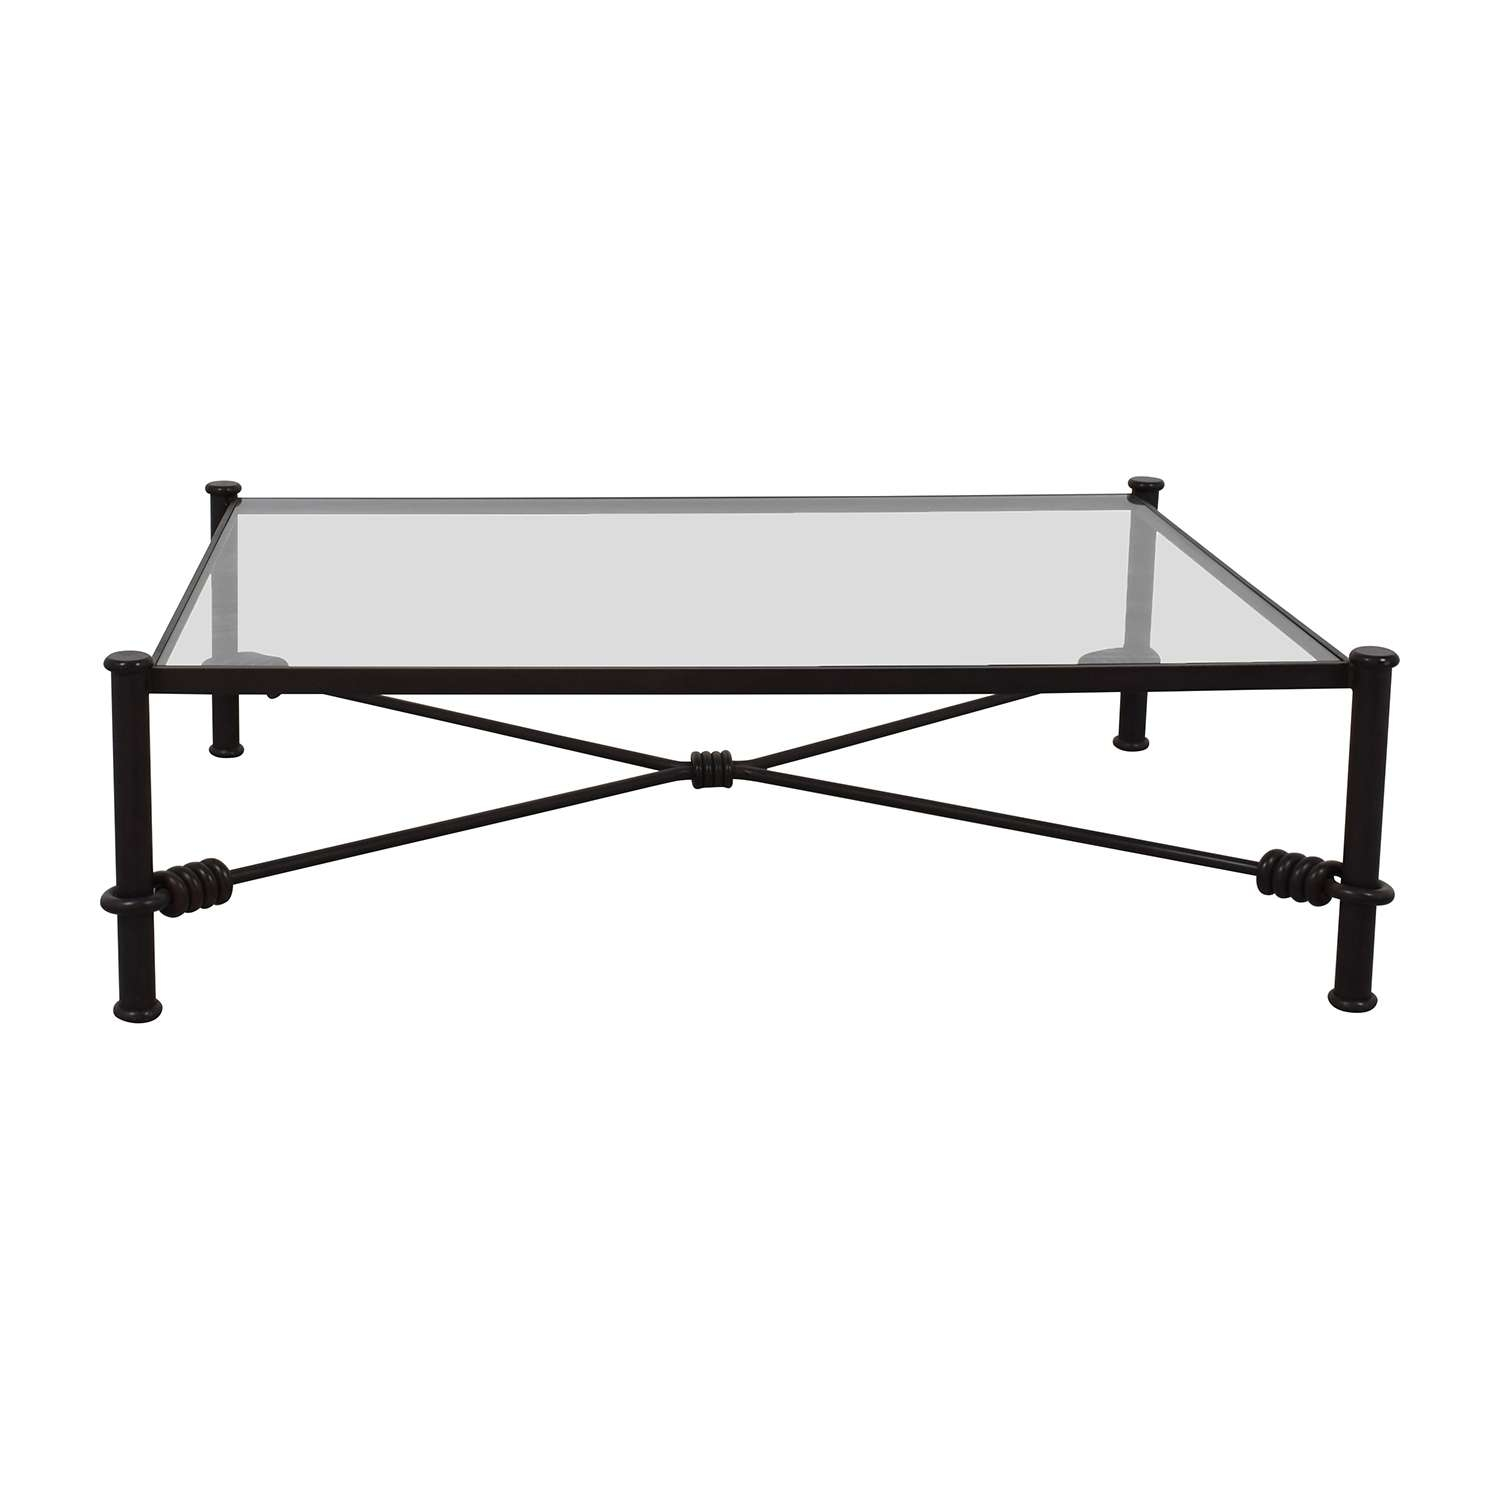 [%famous Iron Glass Coffee Table Pertaining To 88% Off – Black Wrought Iron Glass Coffee Table / Tables|88% Off – Black Wrought Iron Glass Coffee Table / Tables Within Favorite Iron Glass Coffee Table%] (View 9 of 20)